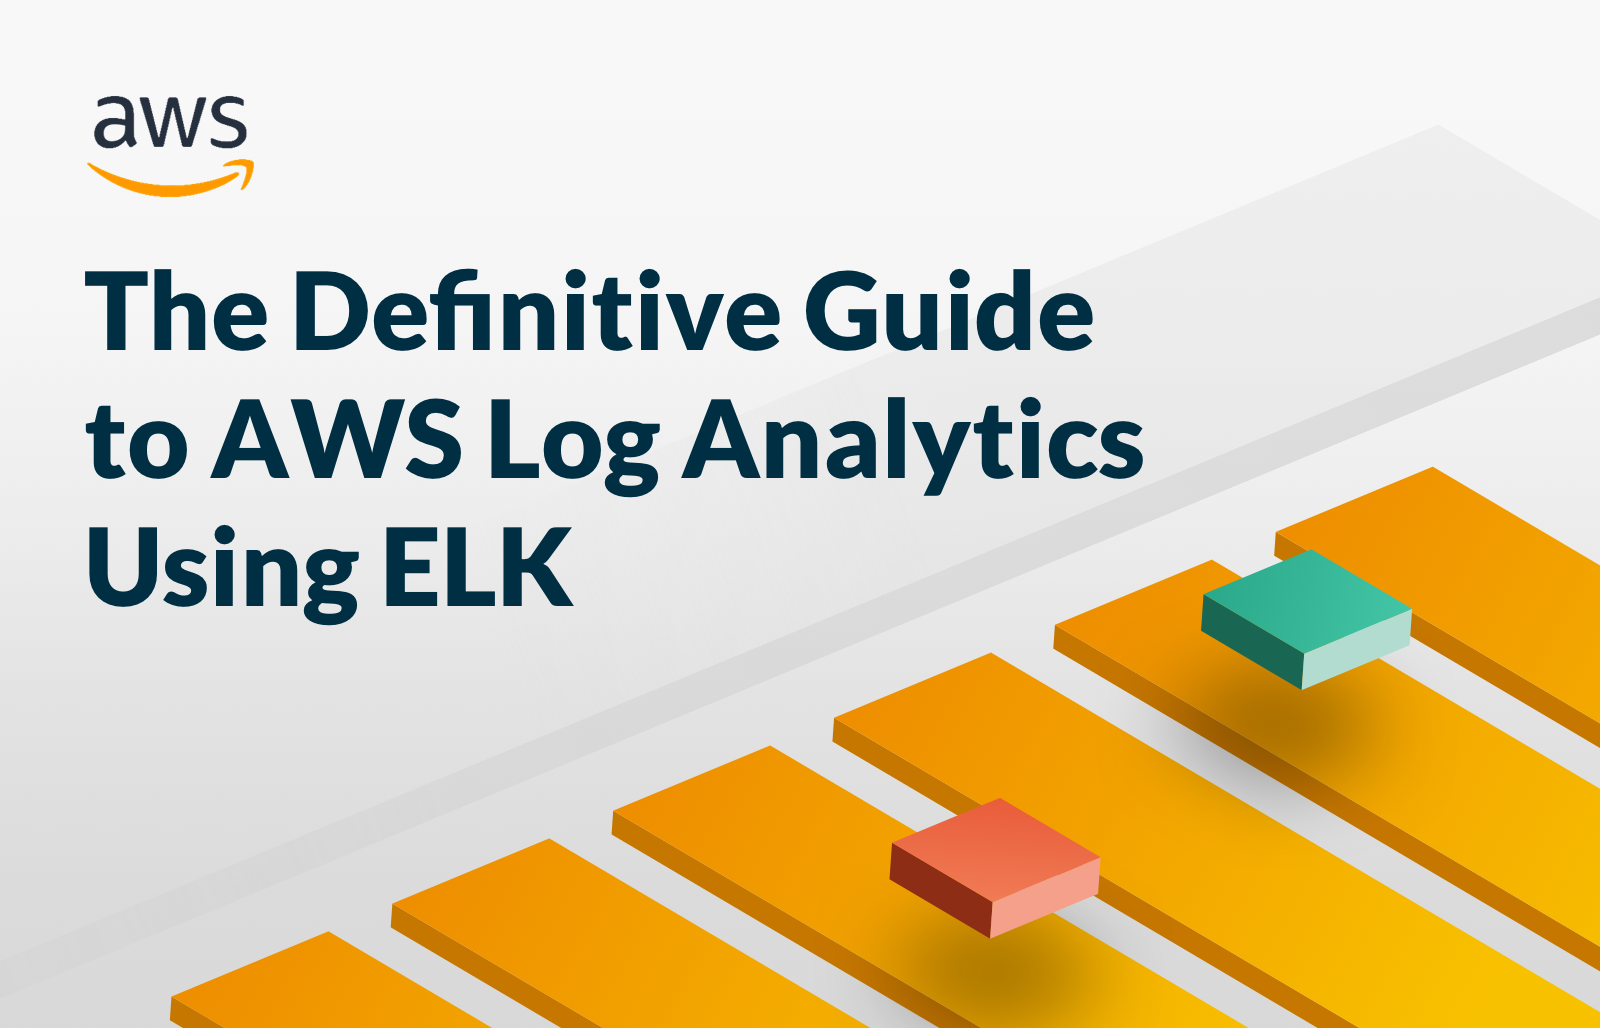 The Definitive Guide to AWS Log Analytics Using ELK | Logz io